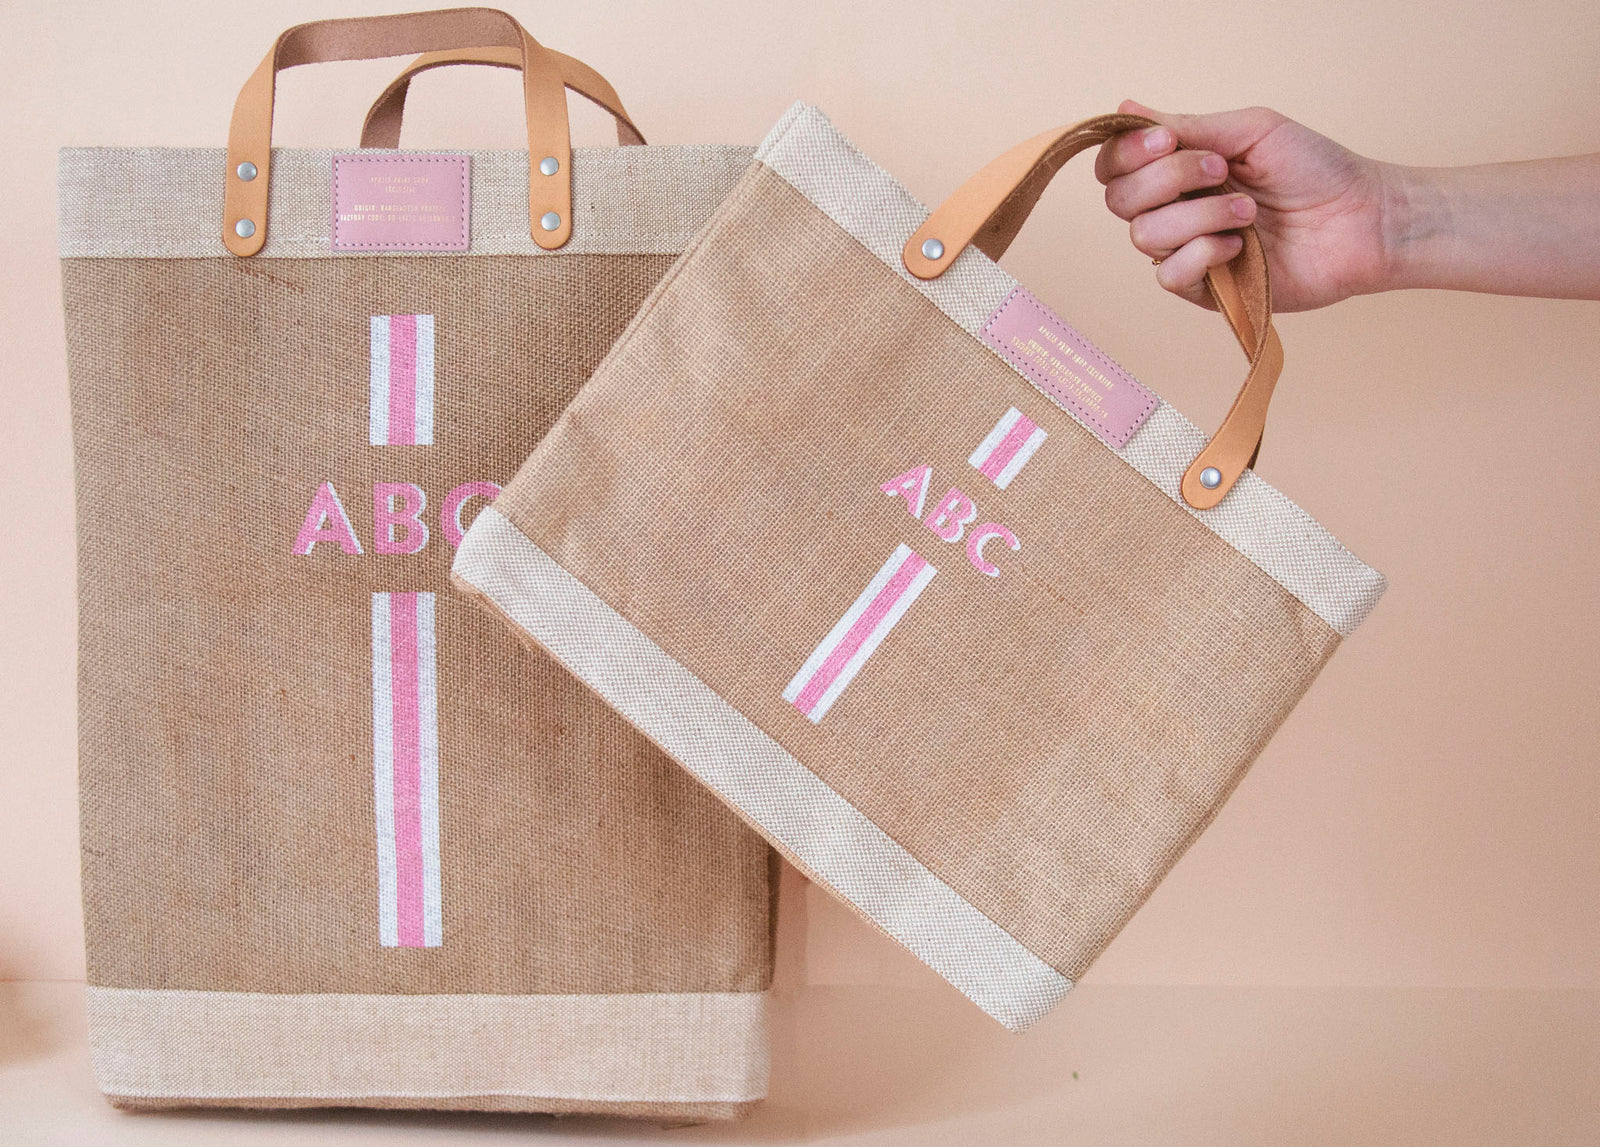 Stripe Monogram Petite Bag in Pink | Gold Foil Print Shop Exclusive